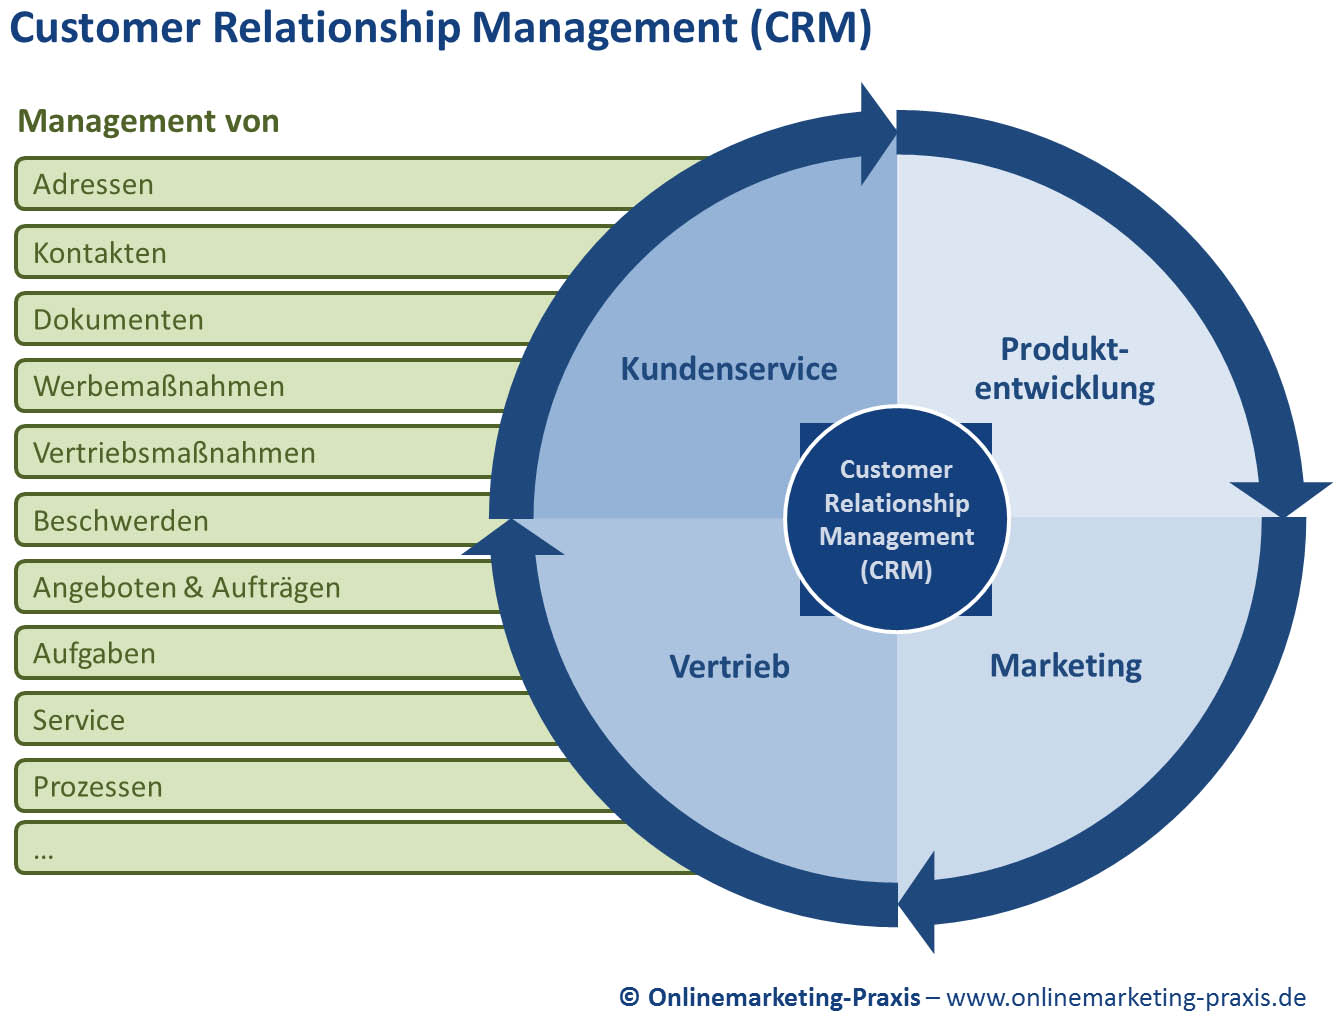 customer relationship management crm definition Define crm crm synonyms, crm pronunciation, crm translation, english dictionary definition of crm abbreviation for customer relationship management.